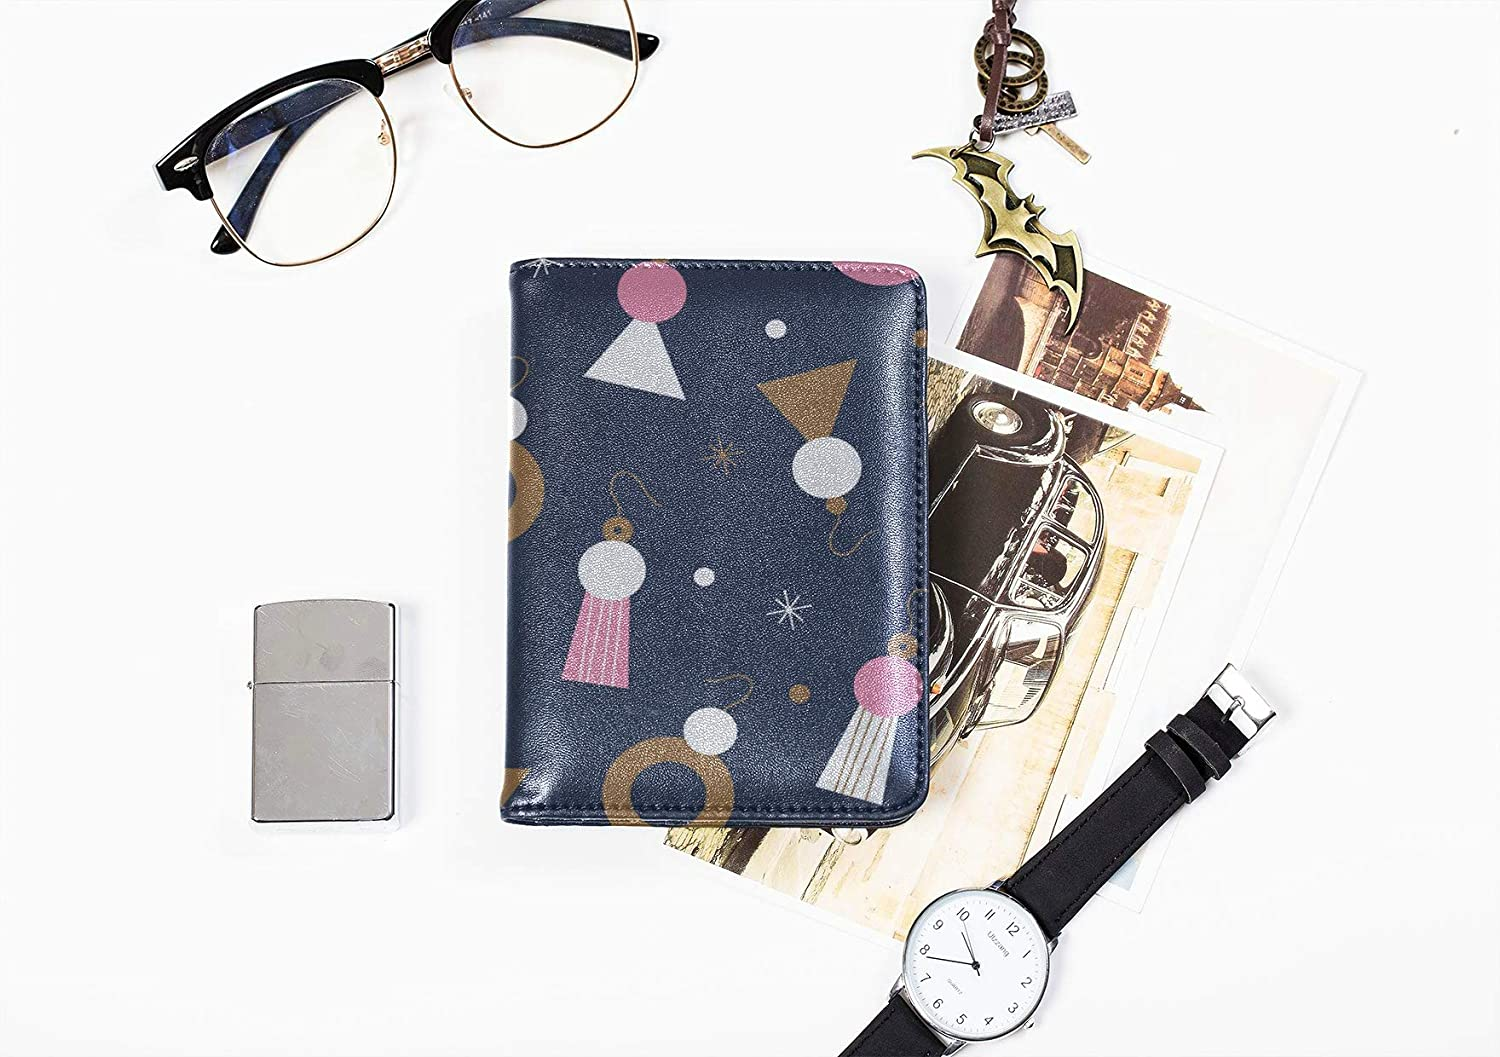 Leotruny Passport Holder Cover Fashion Beautiful Noble Jewelry Earrings Passport Cases For Kids Multi Purpose Print Vintage Passport Cover Travel Wallets For Unisex 5.51x4.37 Inch